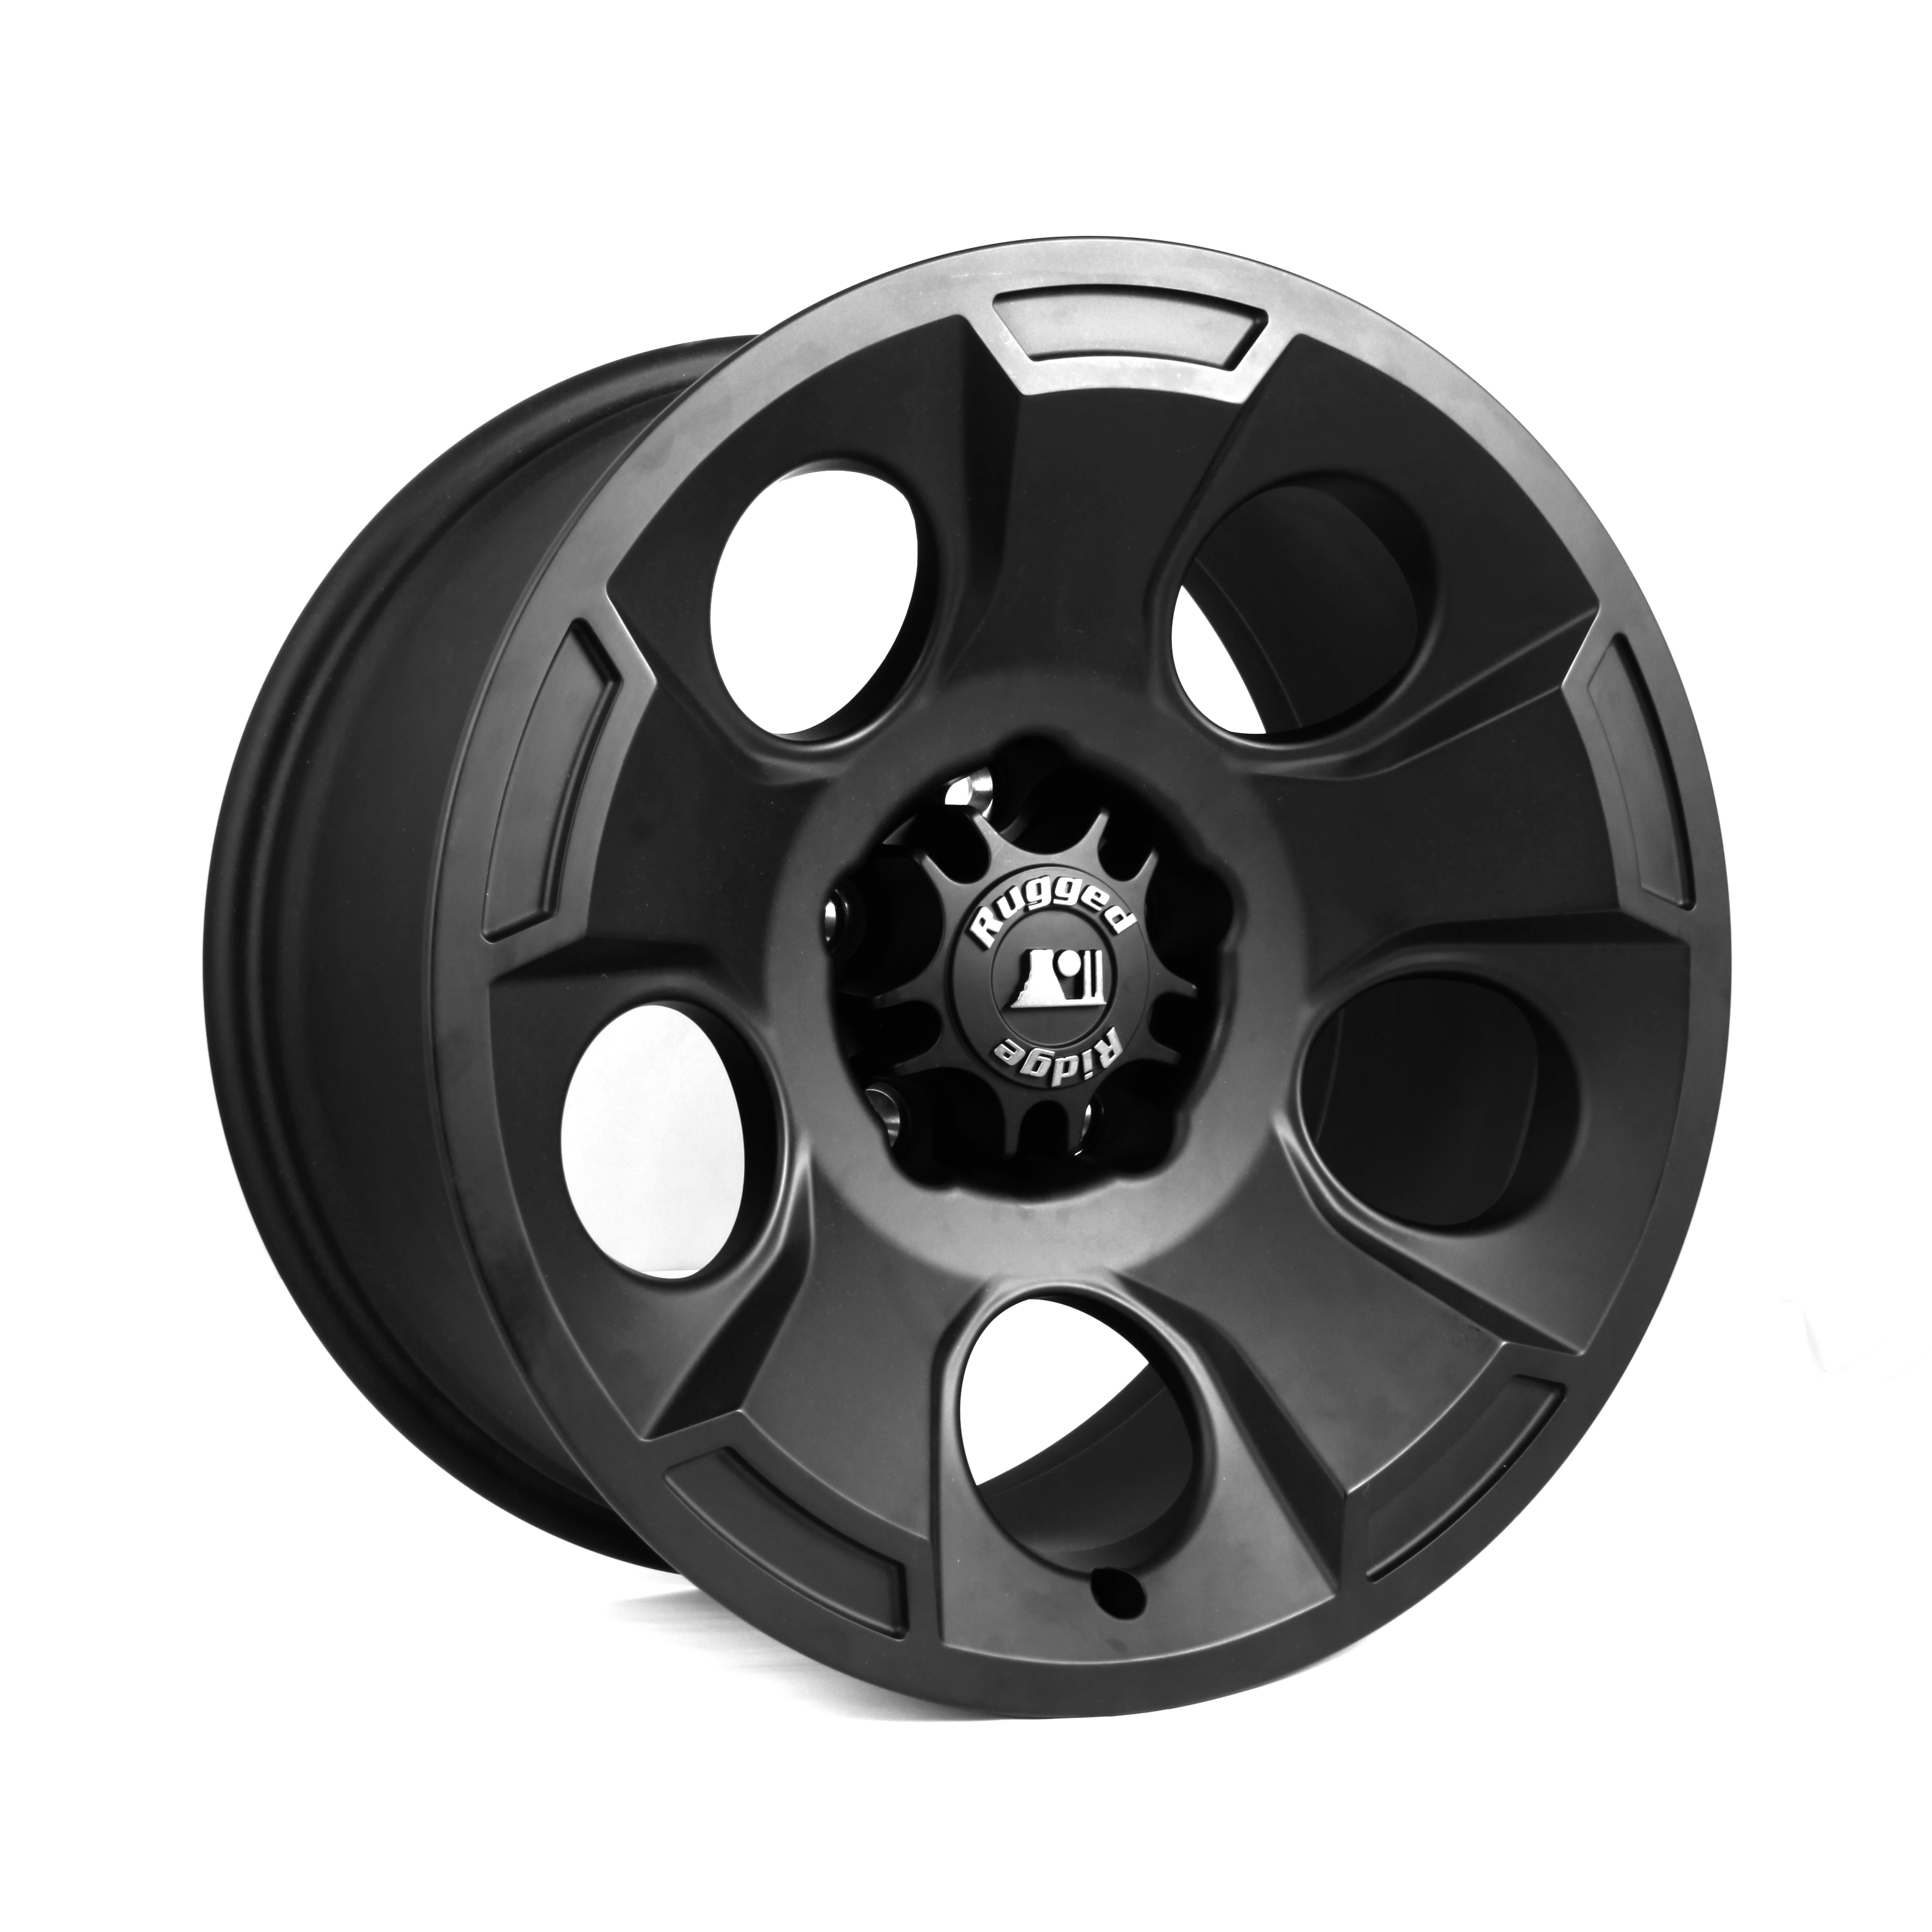 New at Summit Racing Equipment Remington Wheels General Tire and